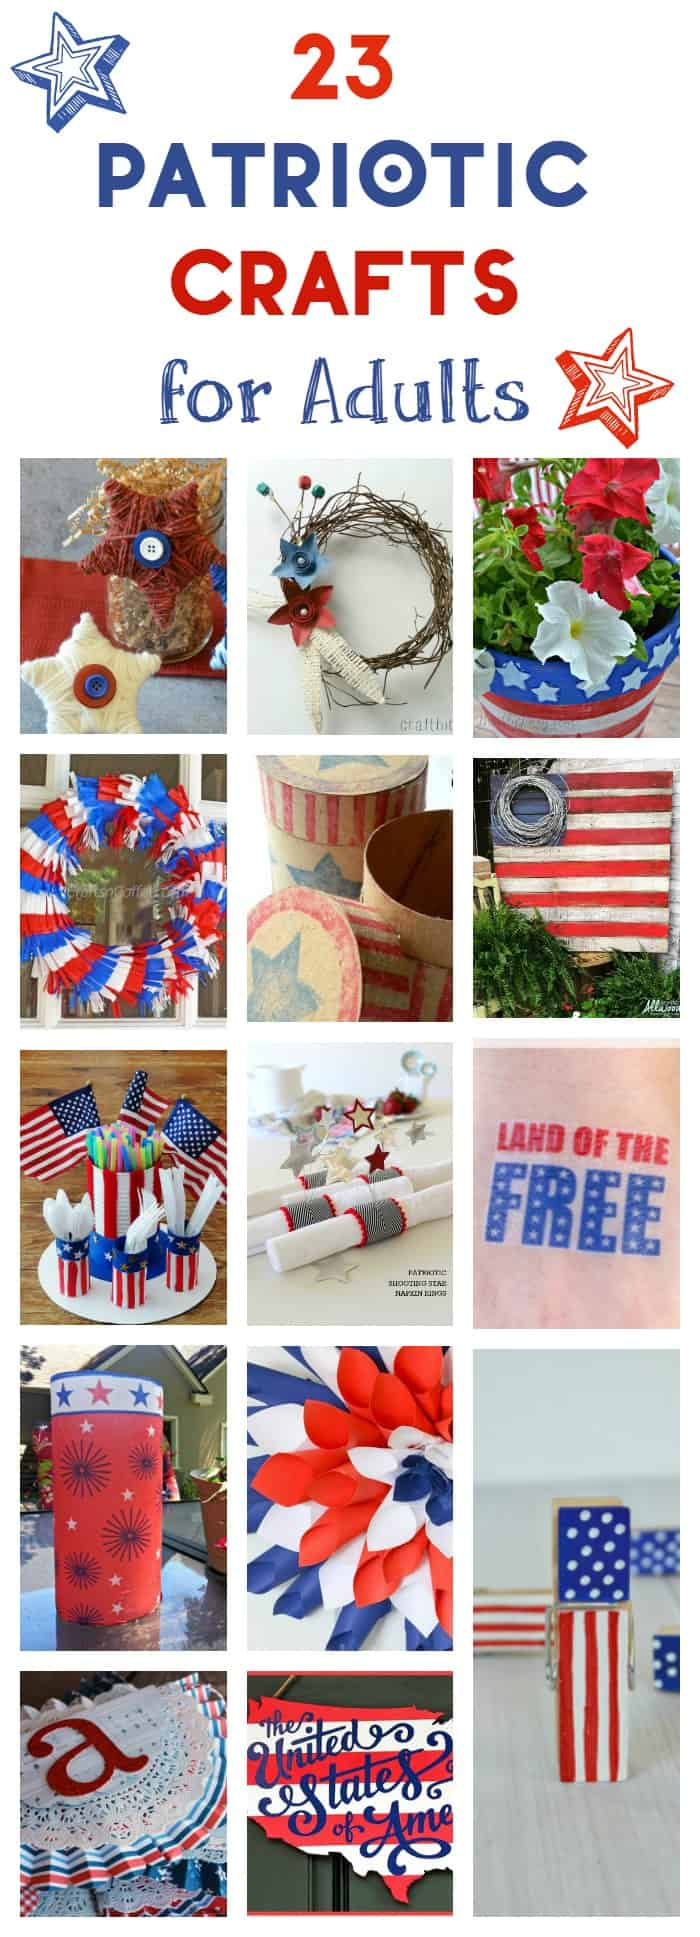 Charming patriotic th of july crafts that make